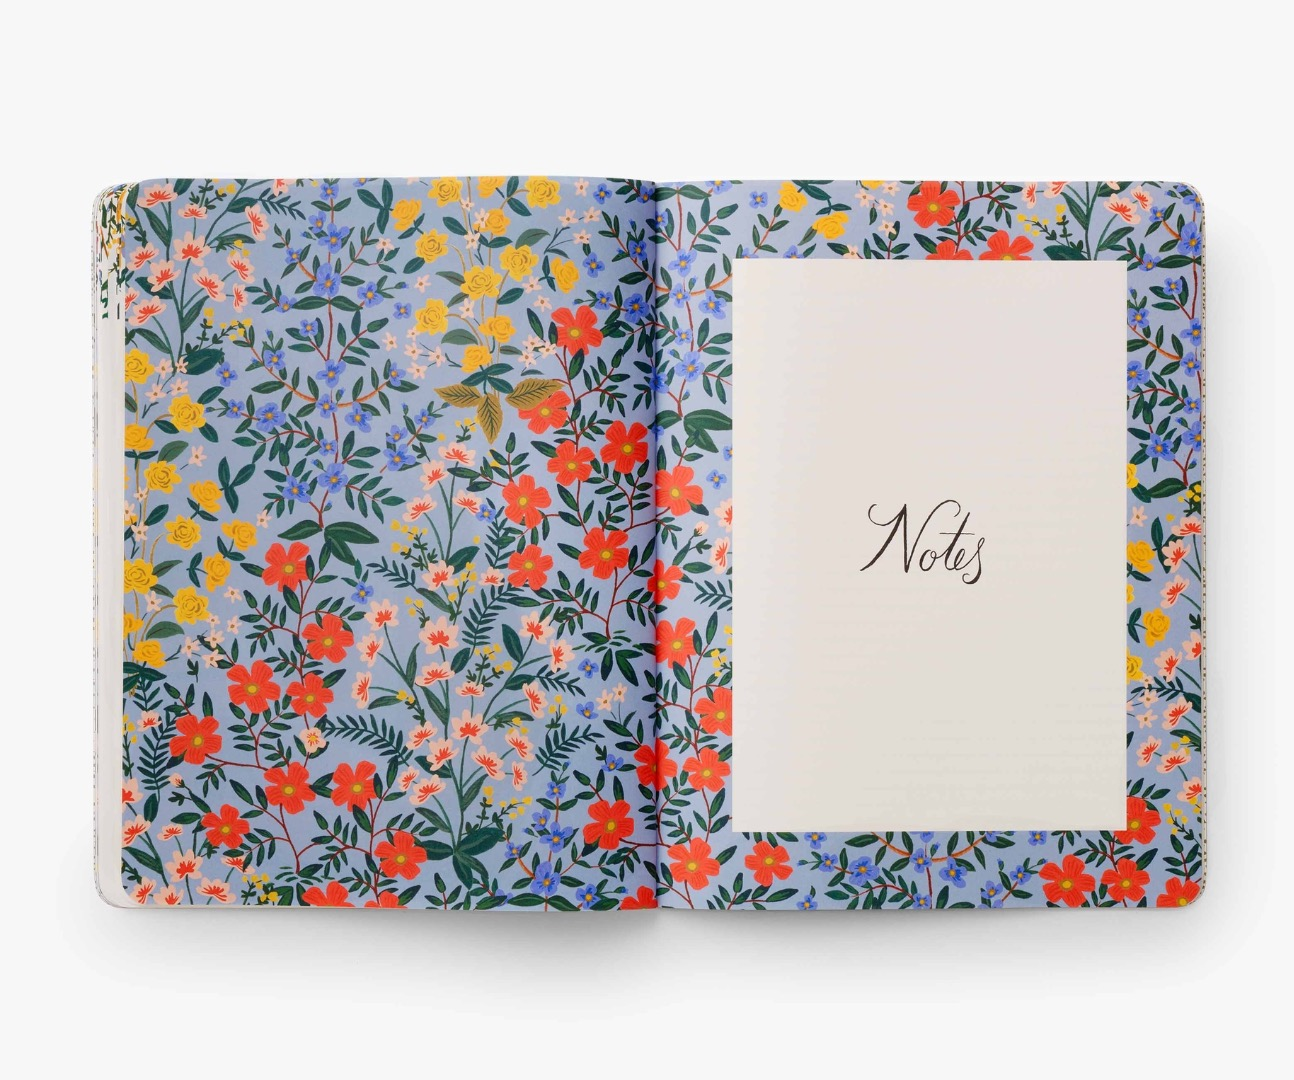 2022 Wildwood Appointment Notebook 5